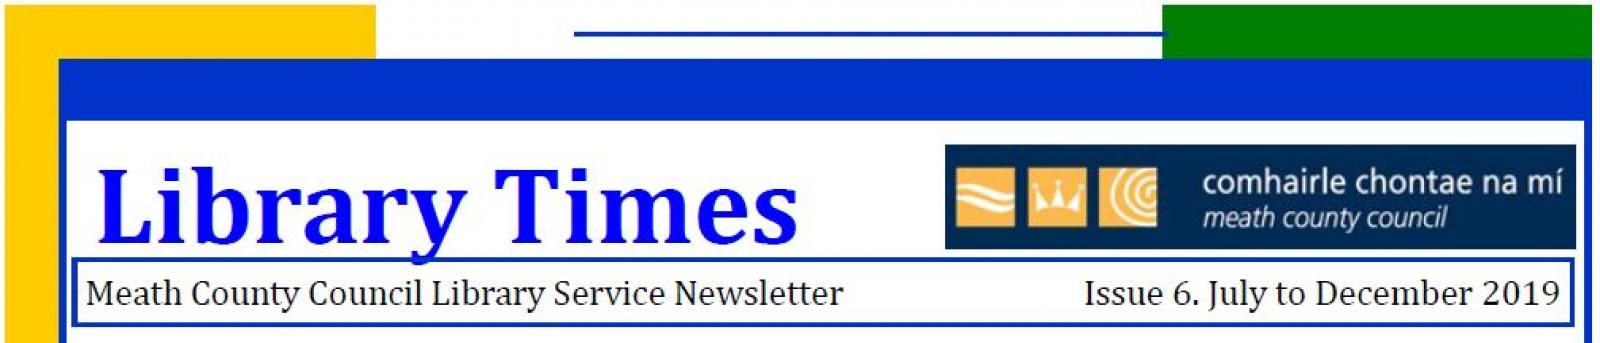 Library Times Newsletter Header